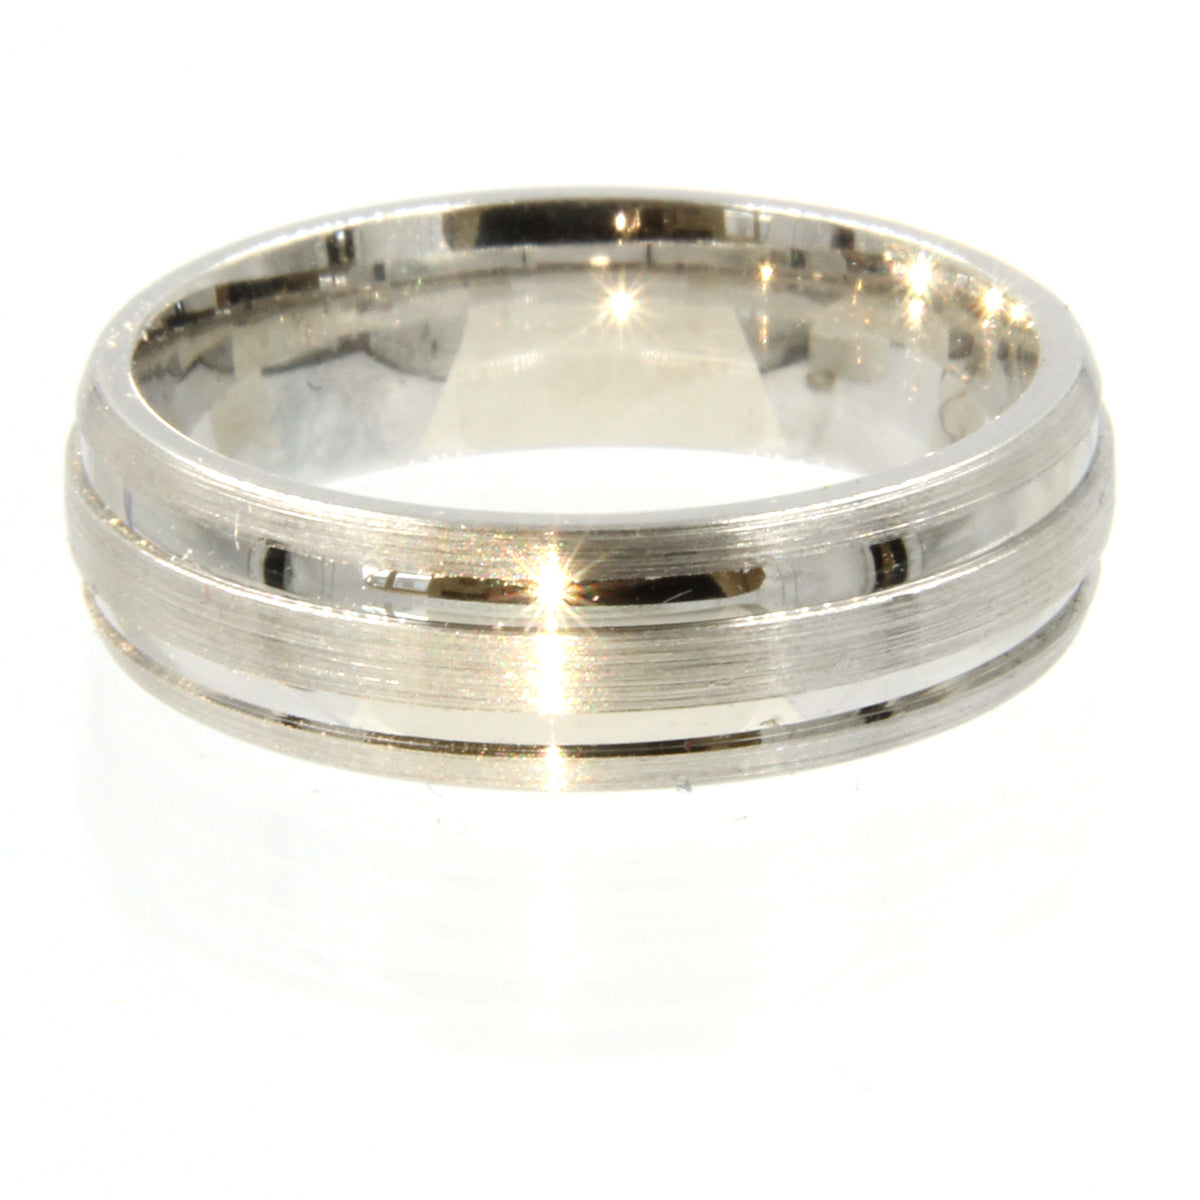 Gents Wedding ring (PALLADIUM OR PLATINUM) - Model RS-PB12